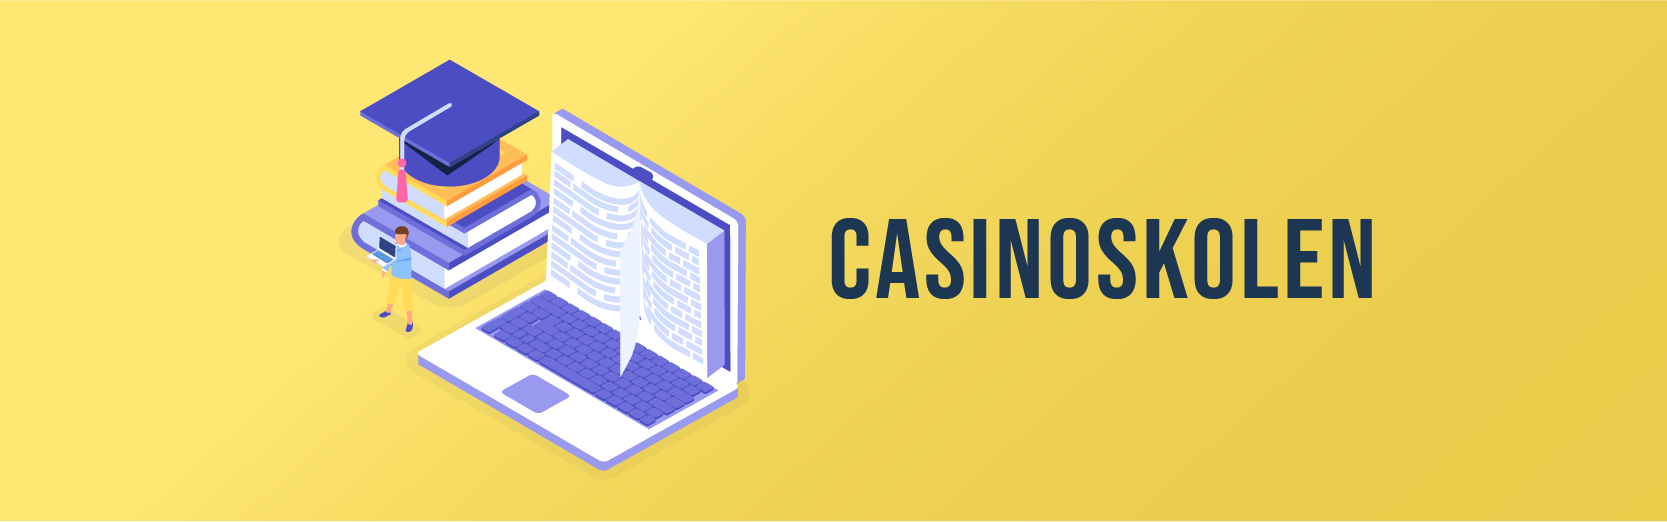 casinoskolen casinospeisalisten